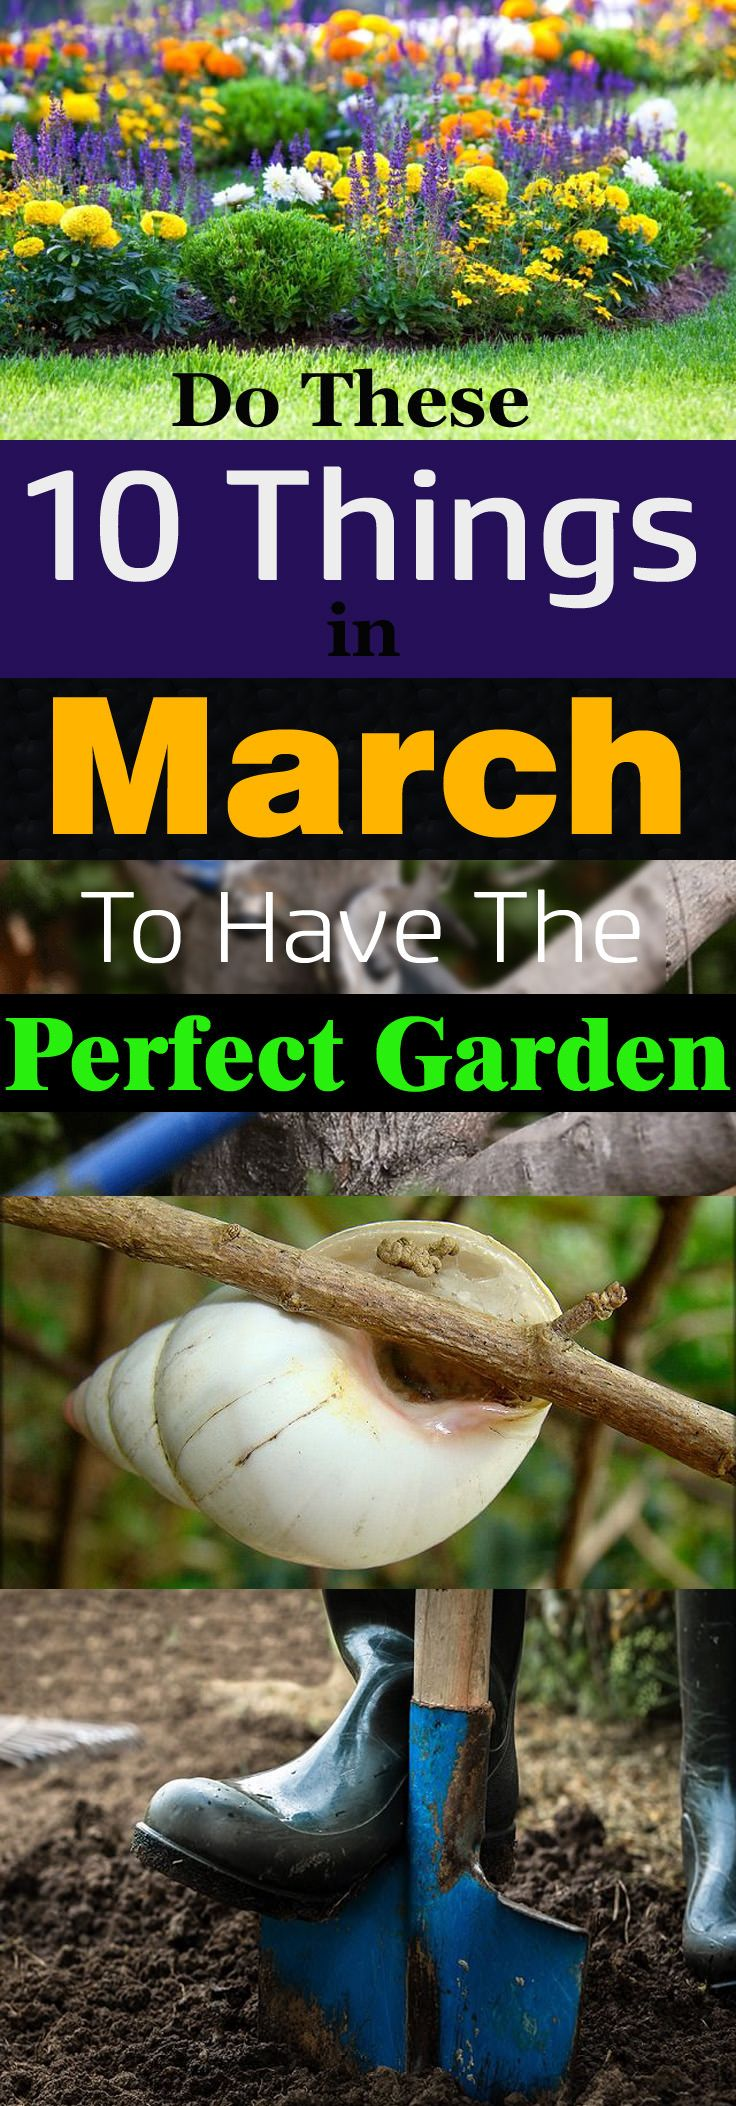 See the checklist of 10 important things you can do in March in the garden as the spring is about to come and gardening season is beginning!